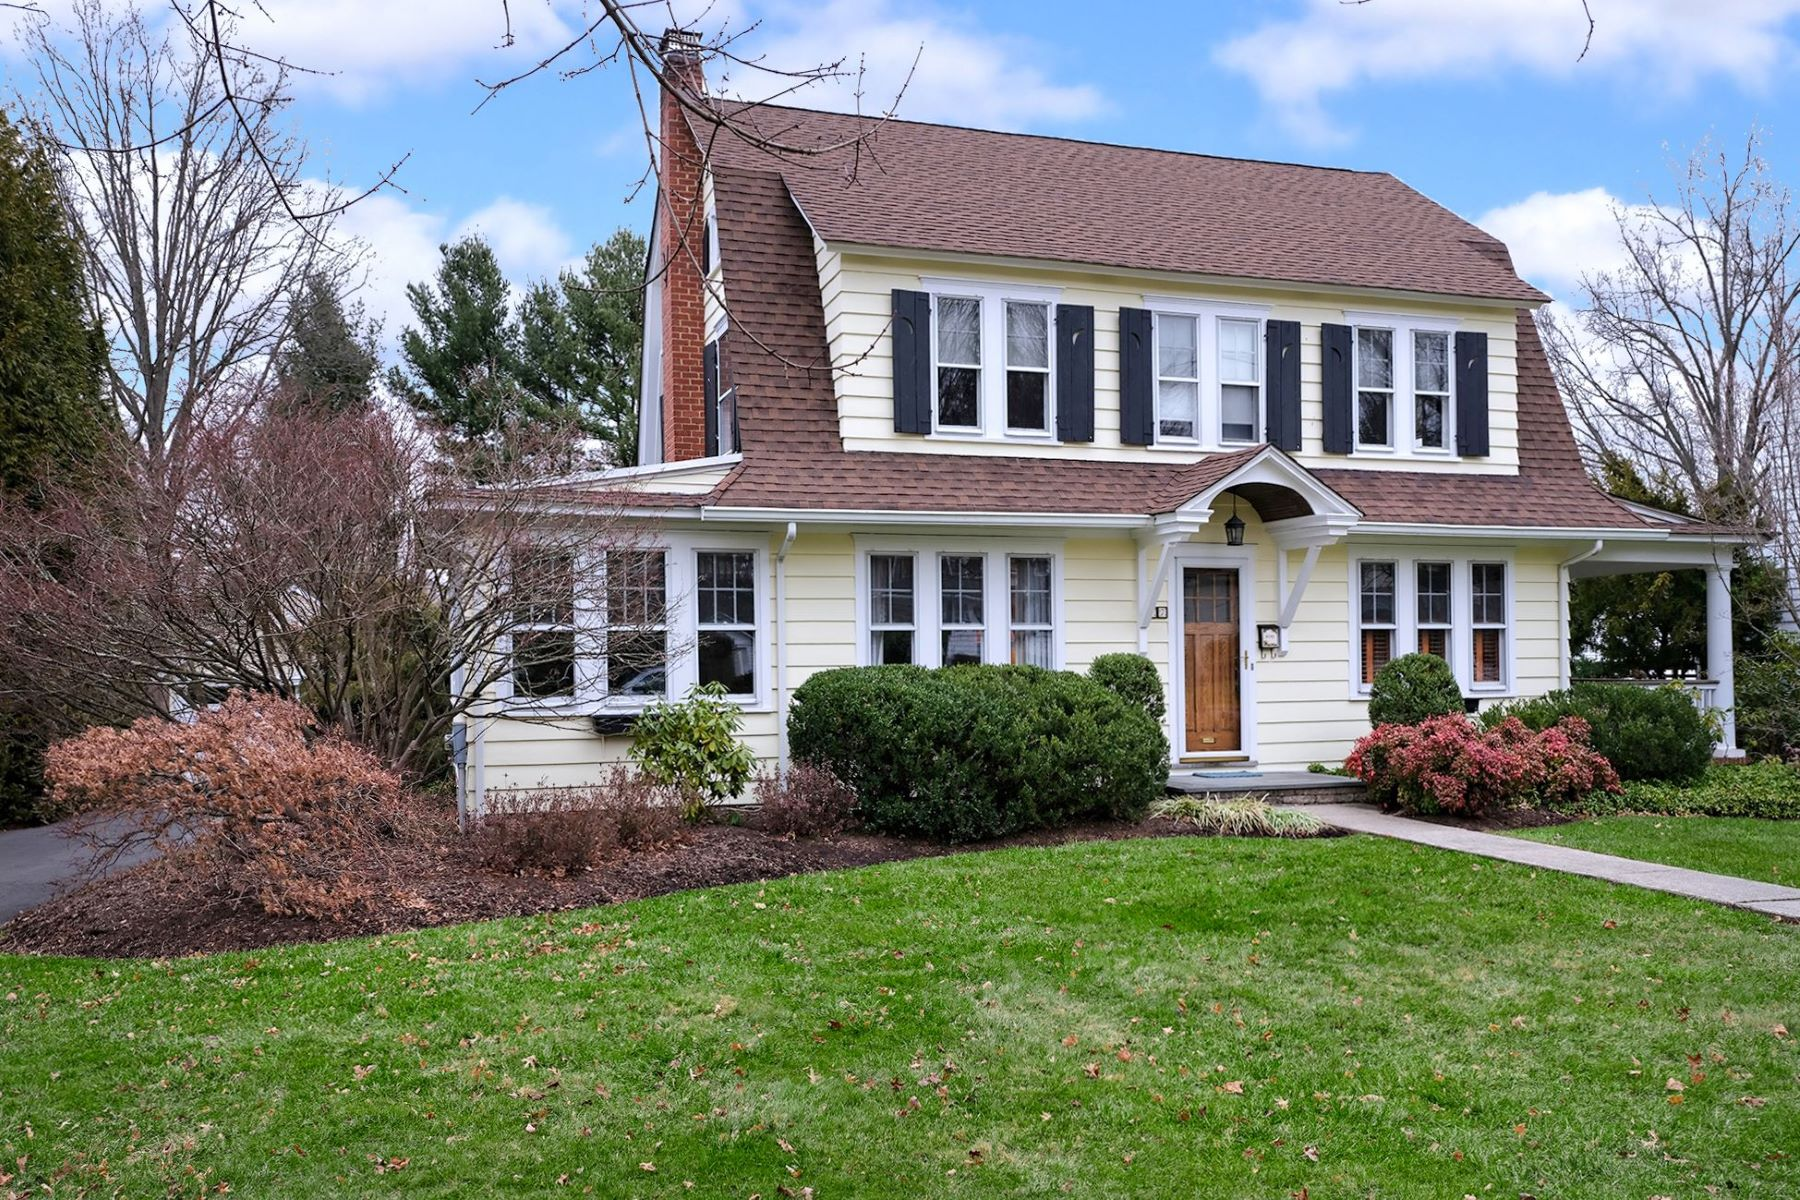 Single Family Homes للـ Sale في Charming Dutch Colonial On A Premier Tree-lined Street 17 East Welling Avenue, Pennington, New Jersey 08534 United States